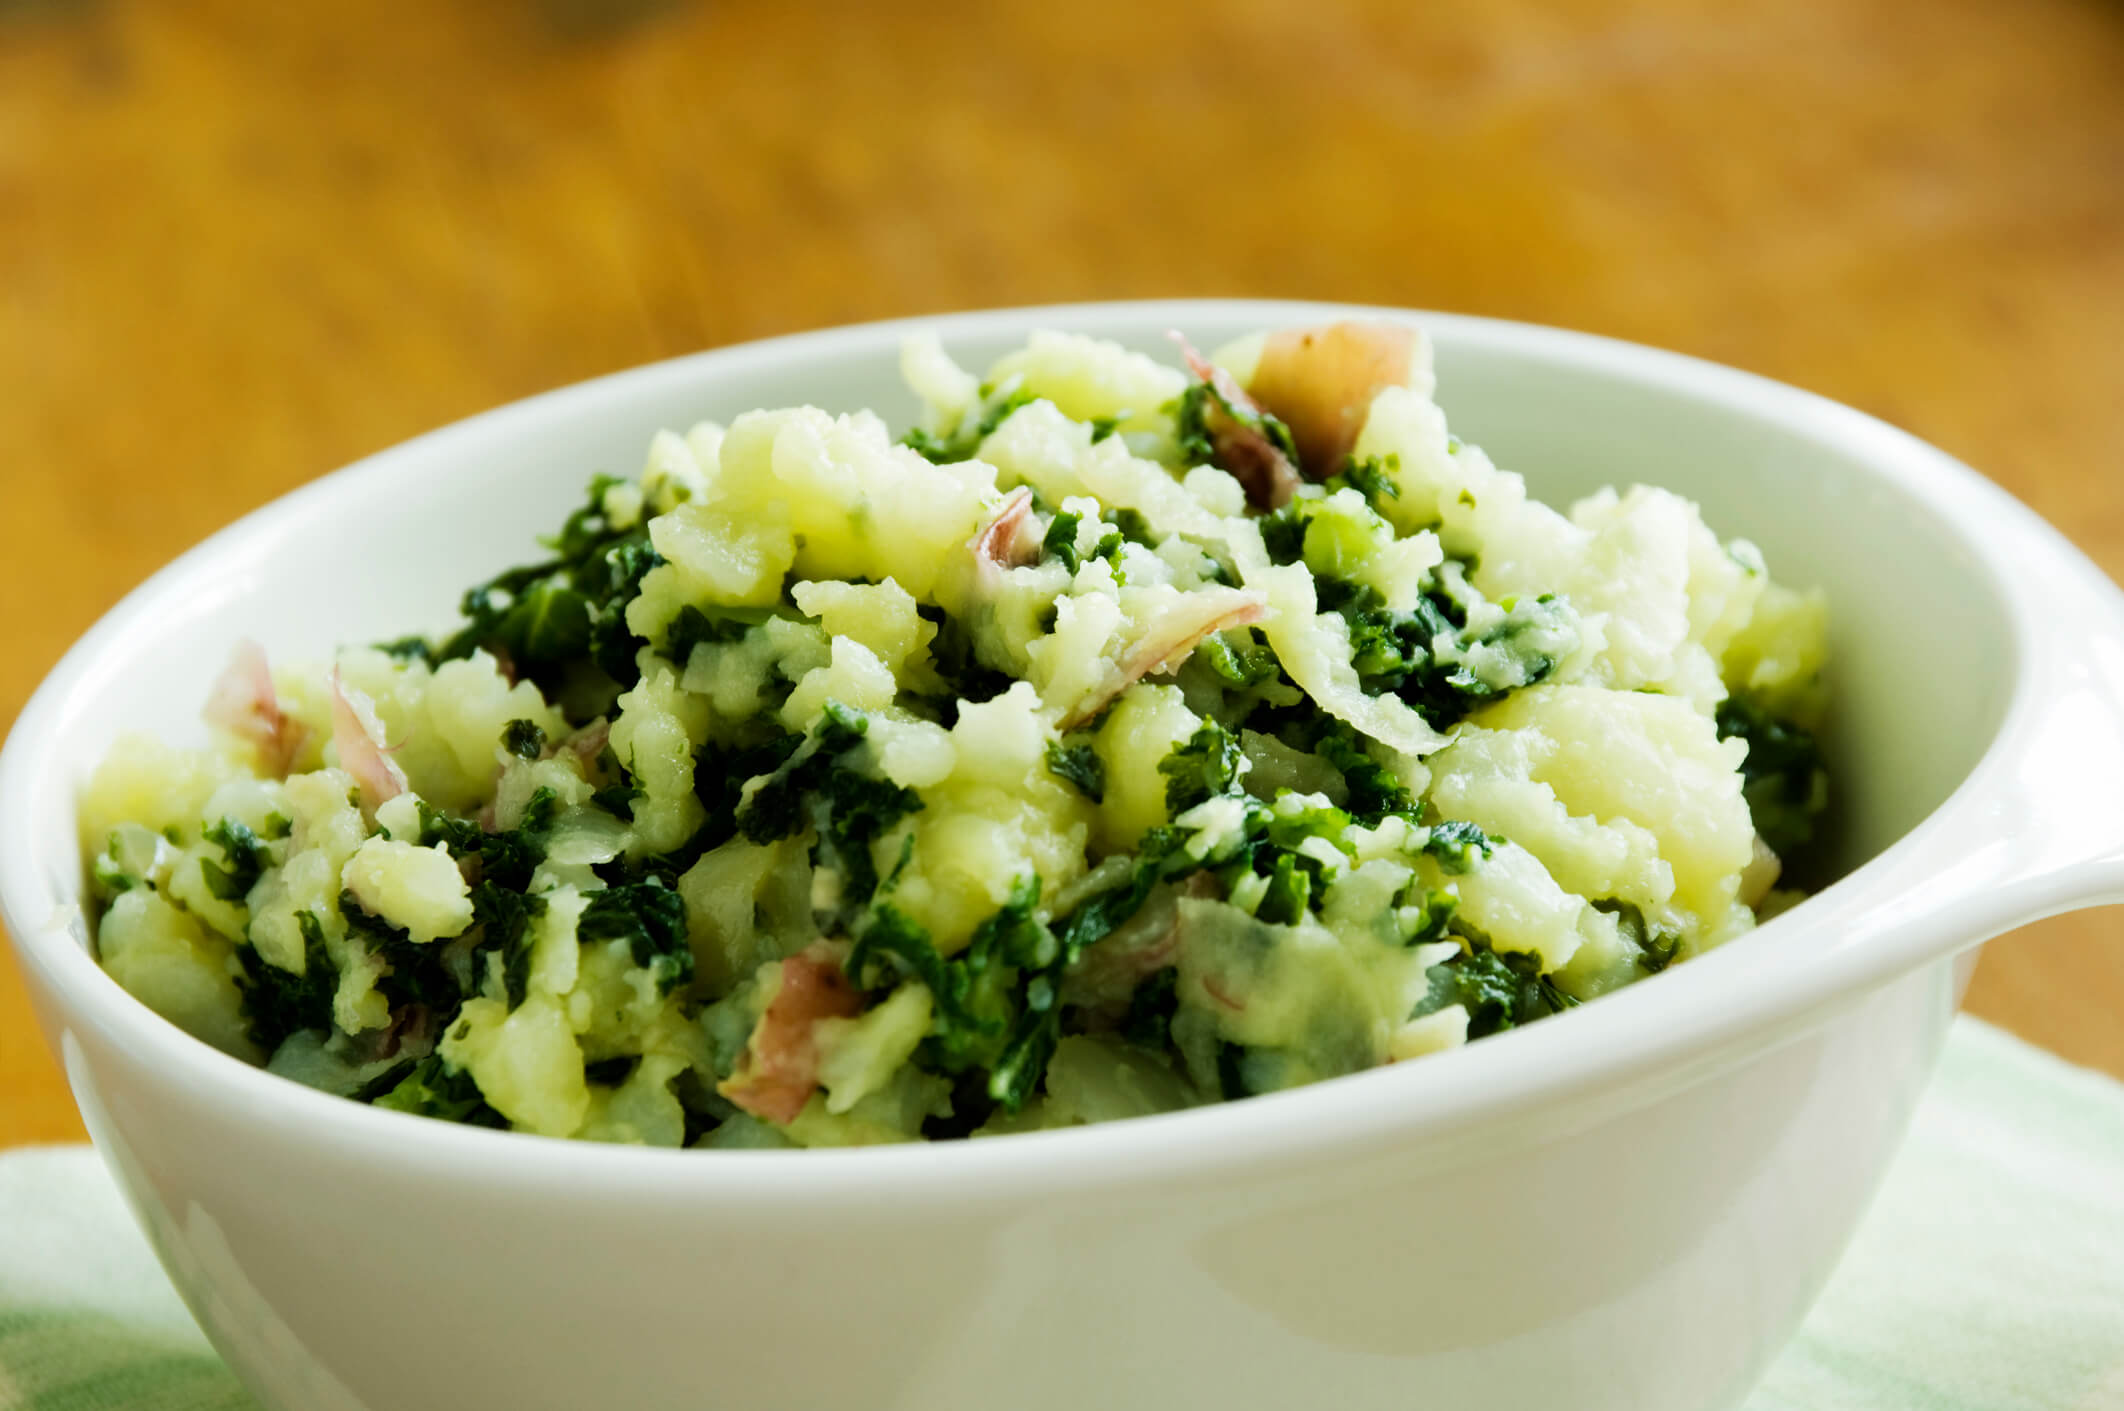 Irish colcannon potatoes